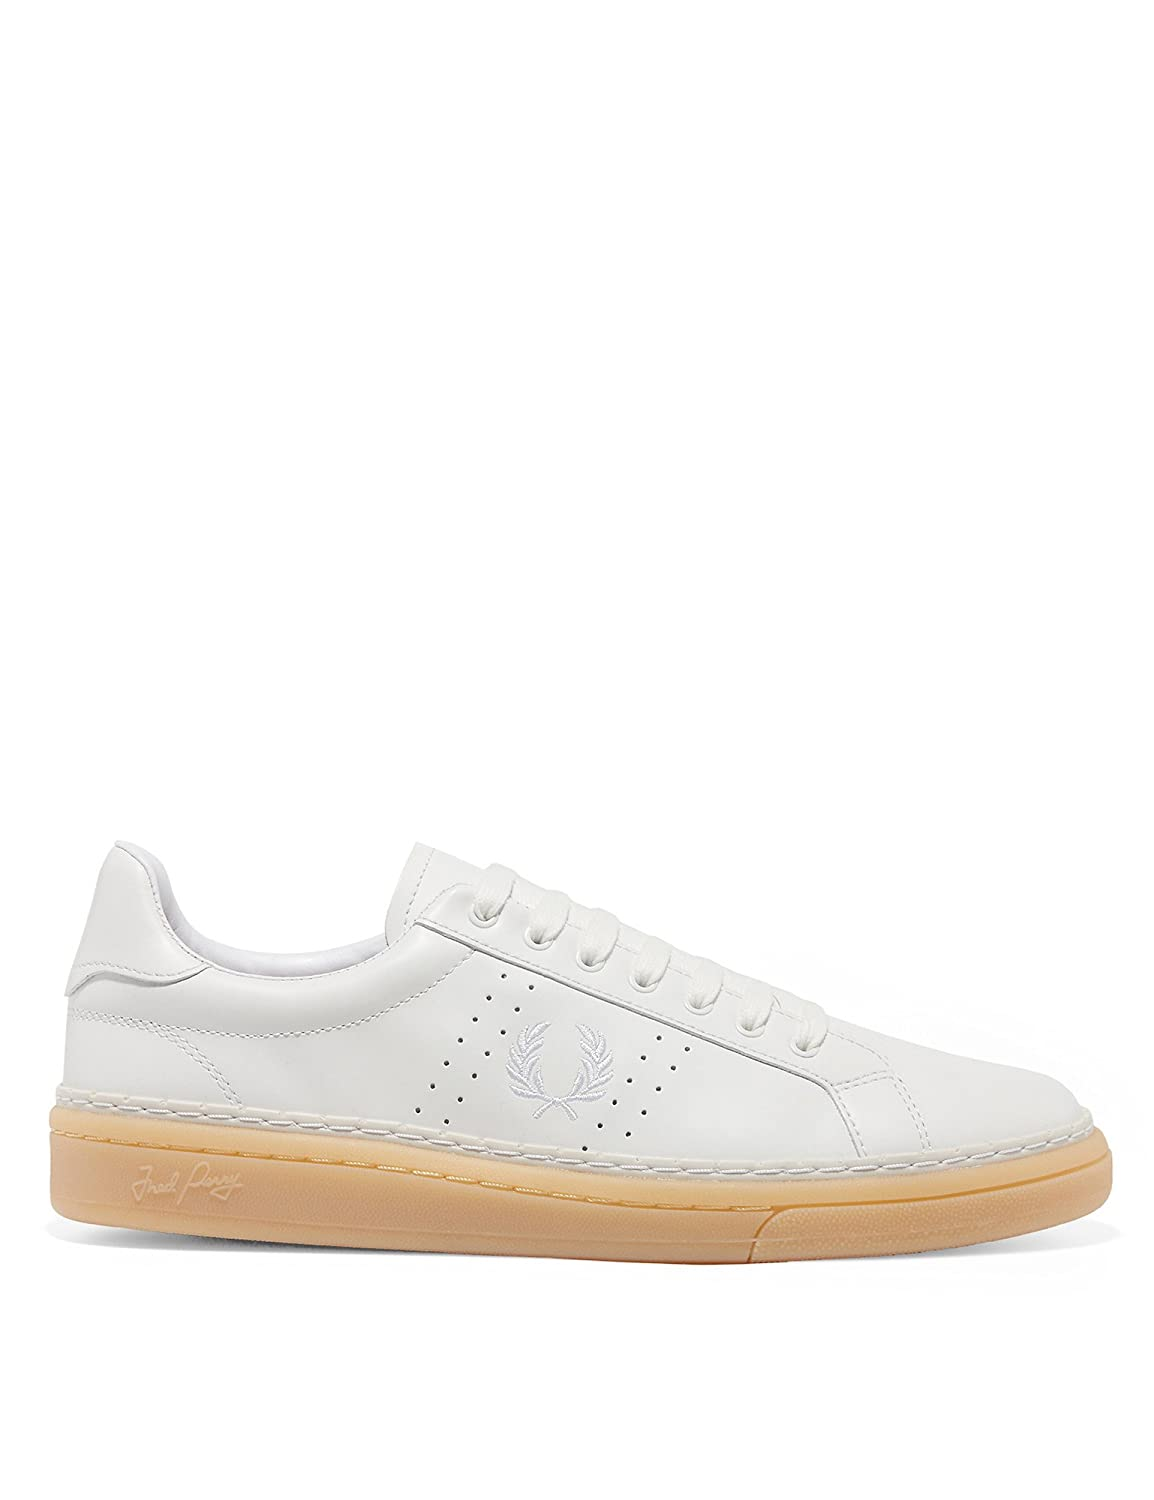 Fred Perry Mens B721 Mens Leather White Tennis Shoes  41.5 EU|Wei?